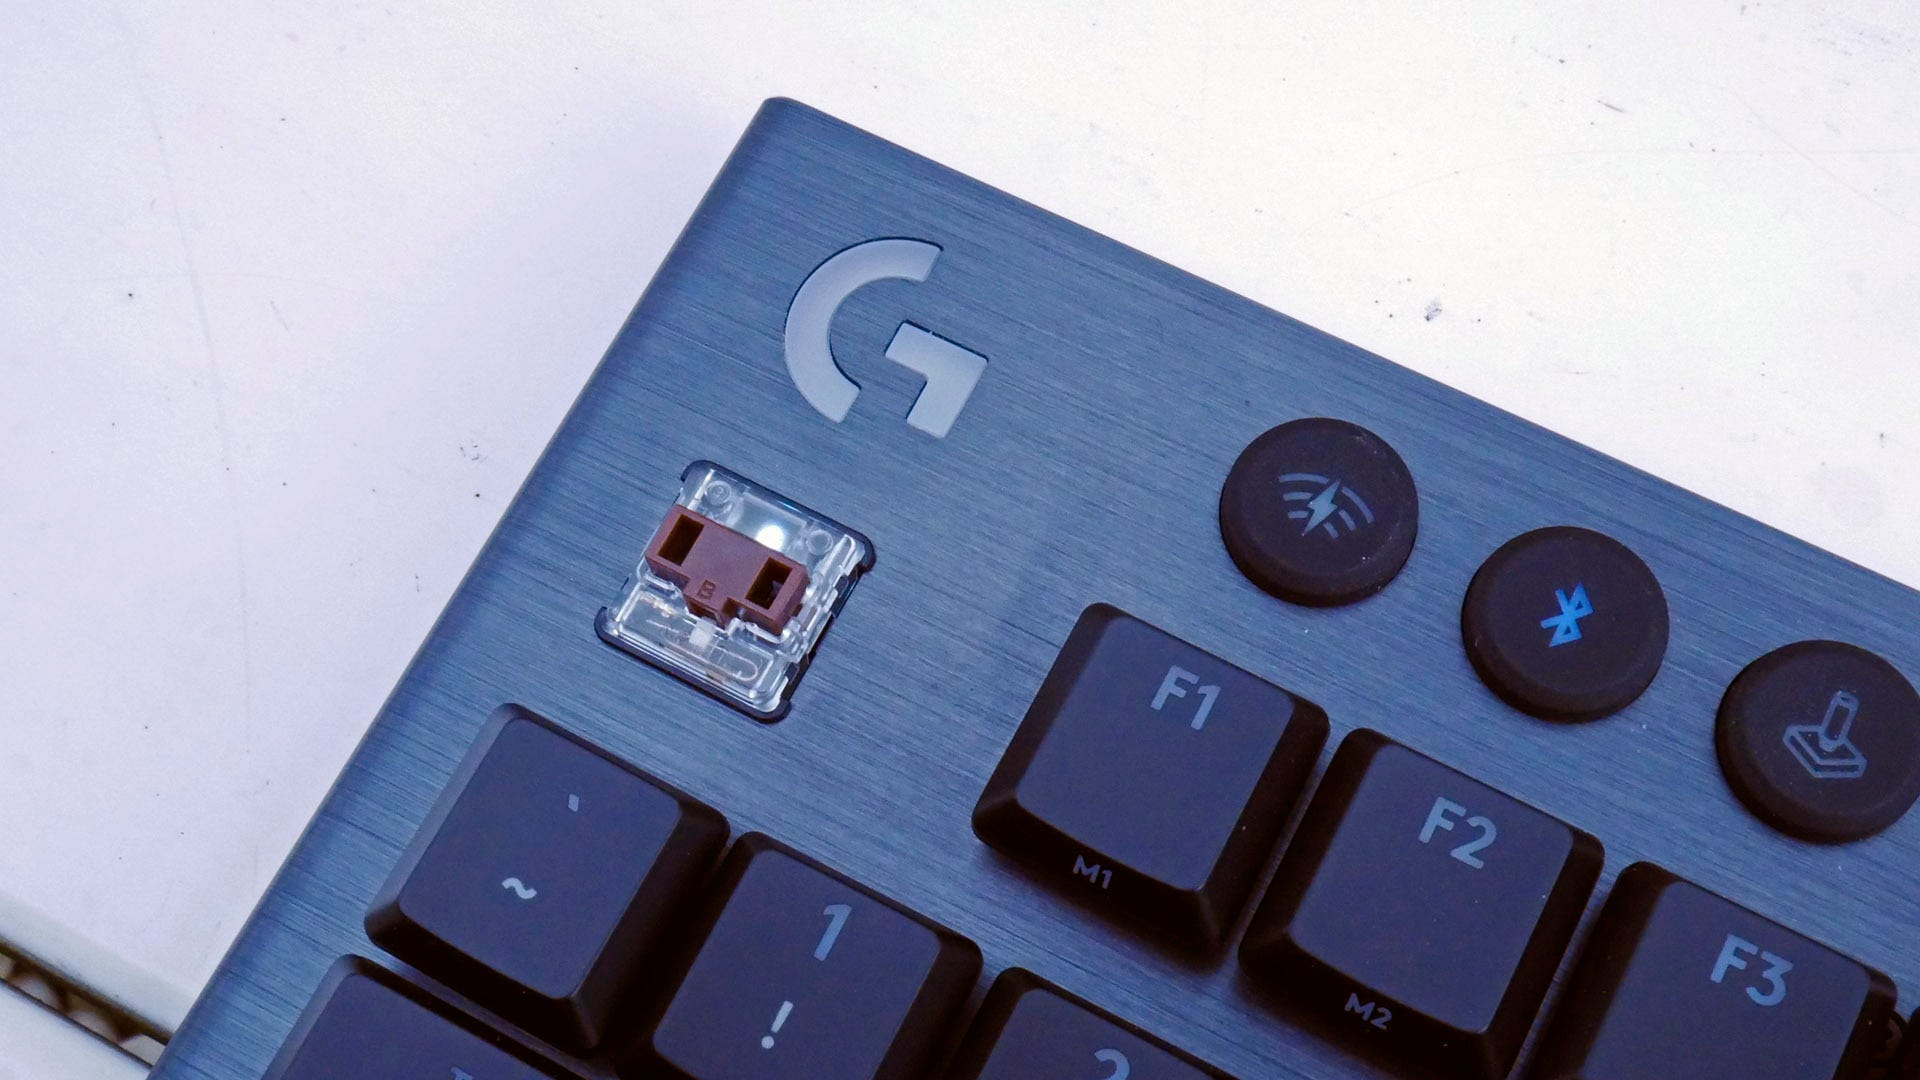 GL Tactile switch on G915